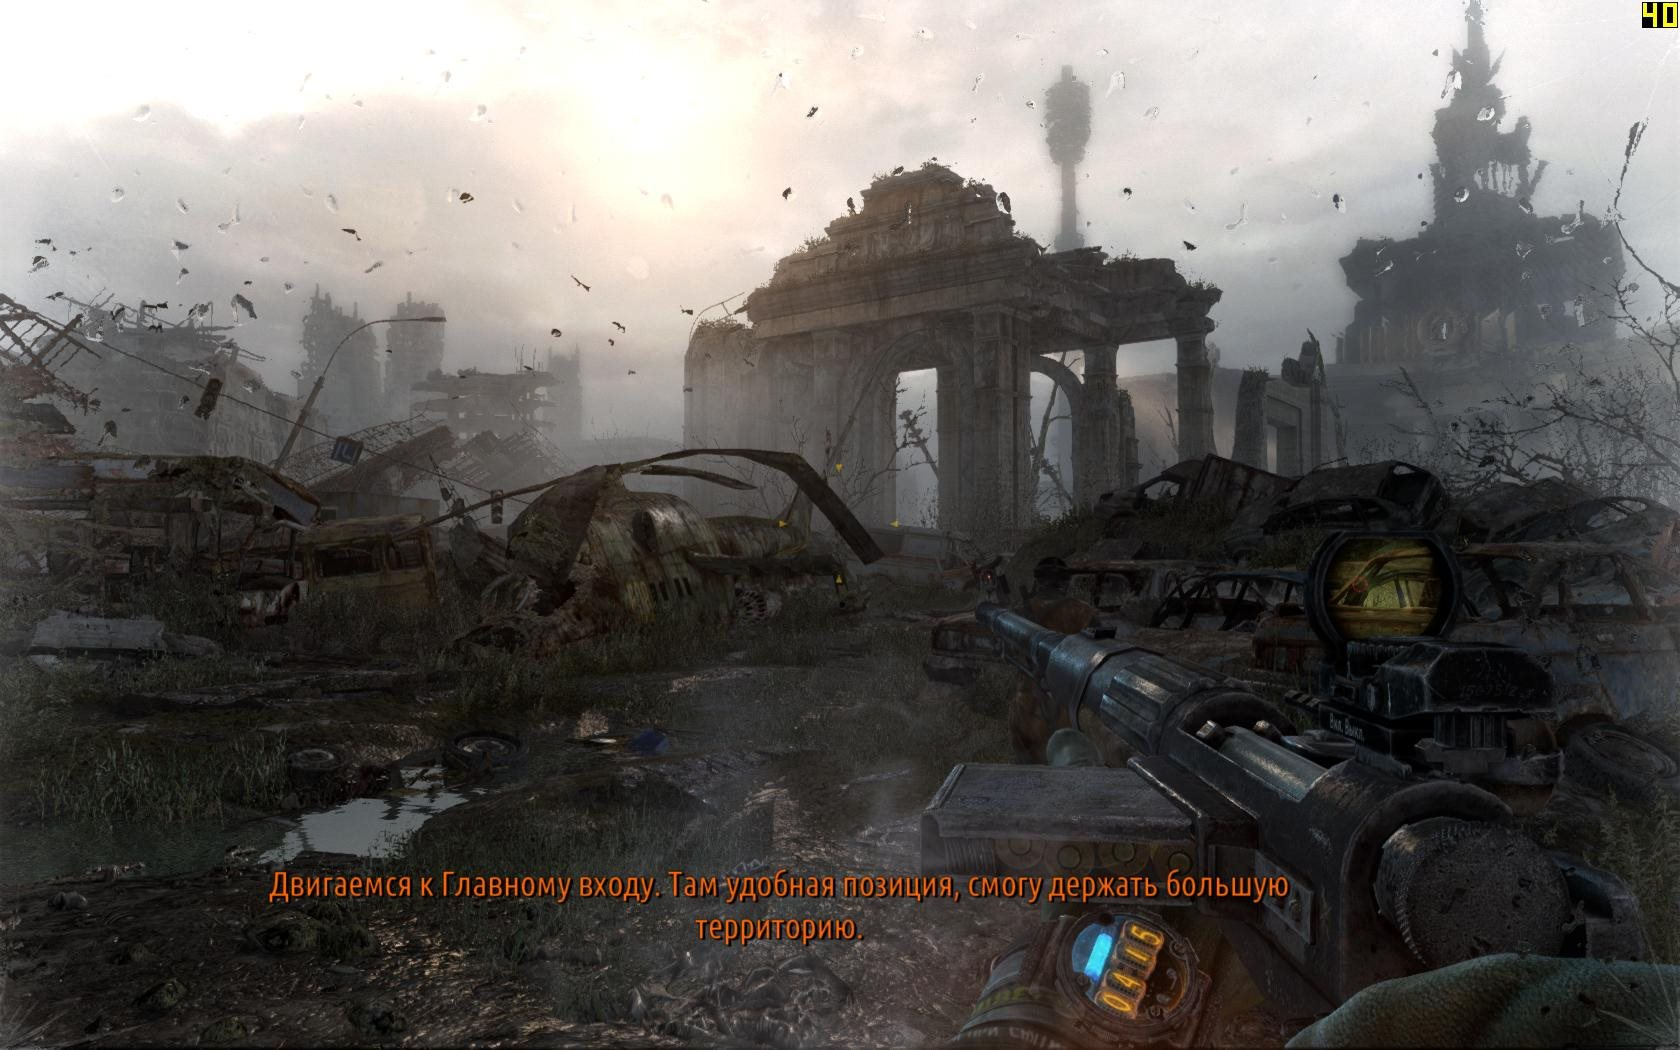 Metro: Last Light / Метро 2033: Луч надежды (2013) [Ru/Multi] (1.0.0.14/dlc) License PROPHET